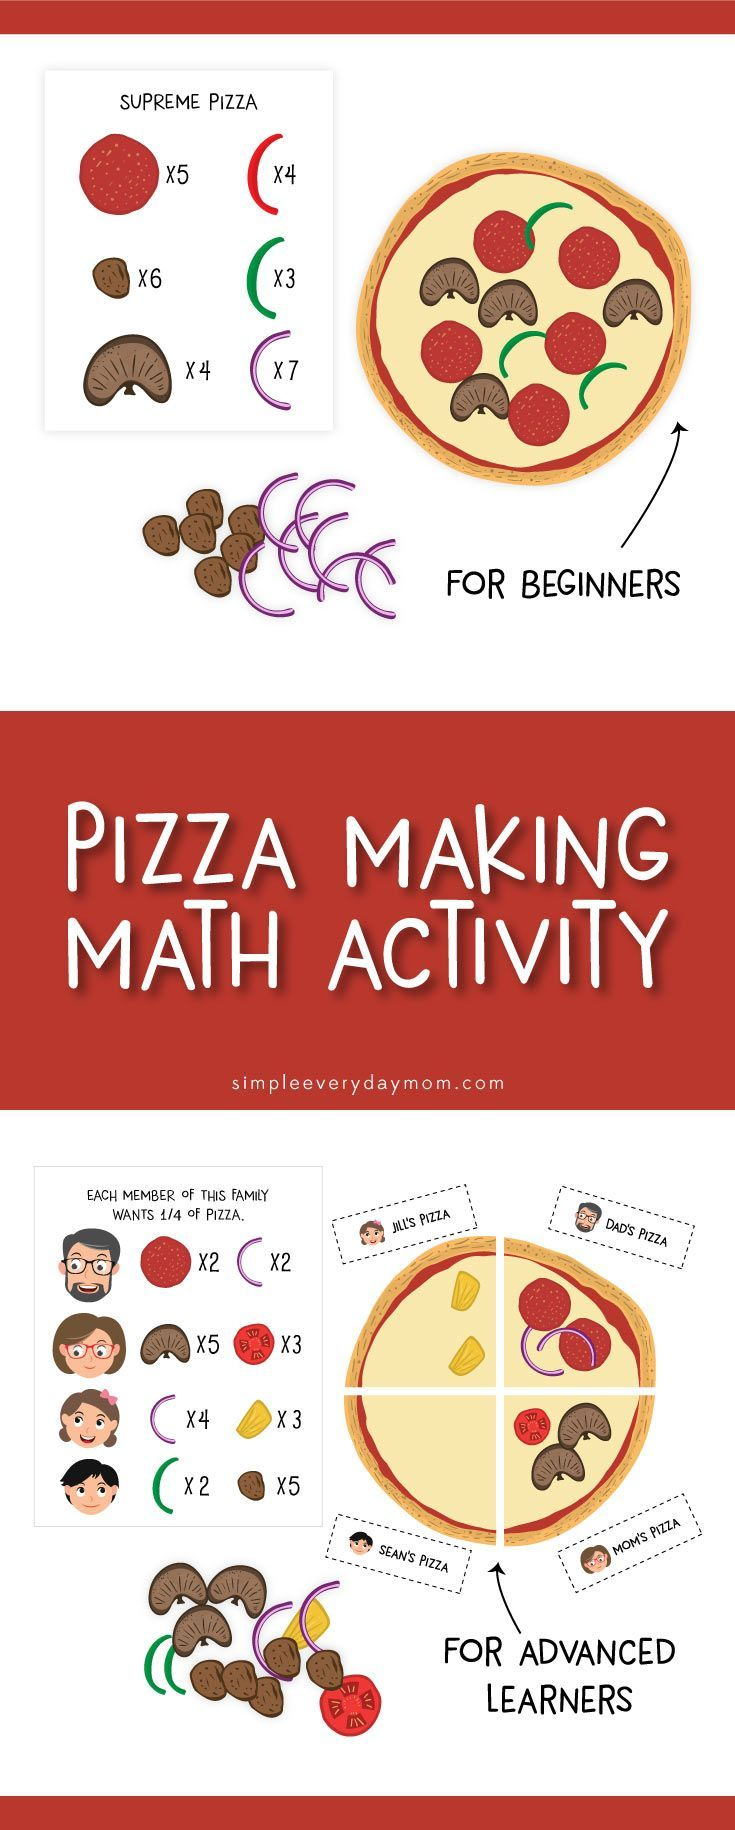 Pizza Game For Kids Math For Preschoolers Toddlers Printable Activities Fo Printable Activities For Kids Math Activities Preschool Fun Activities For Kids [ 1830 x 735 Pixel ]